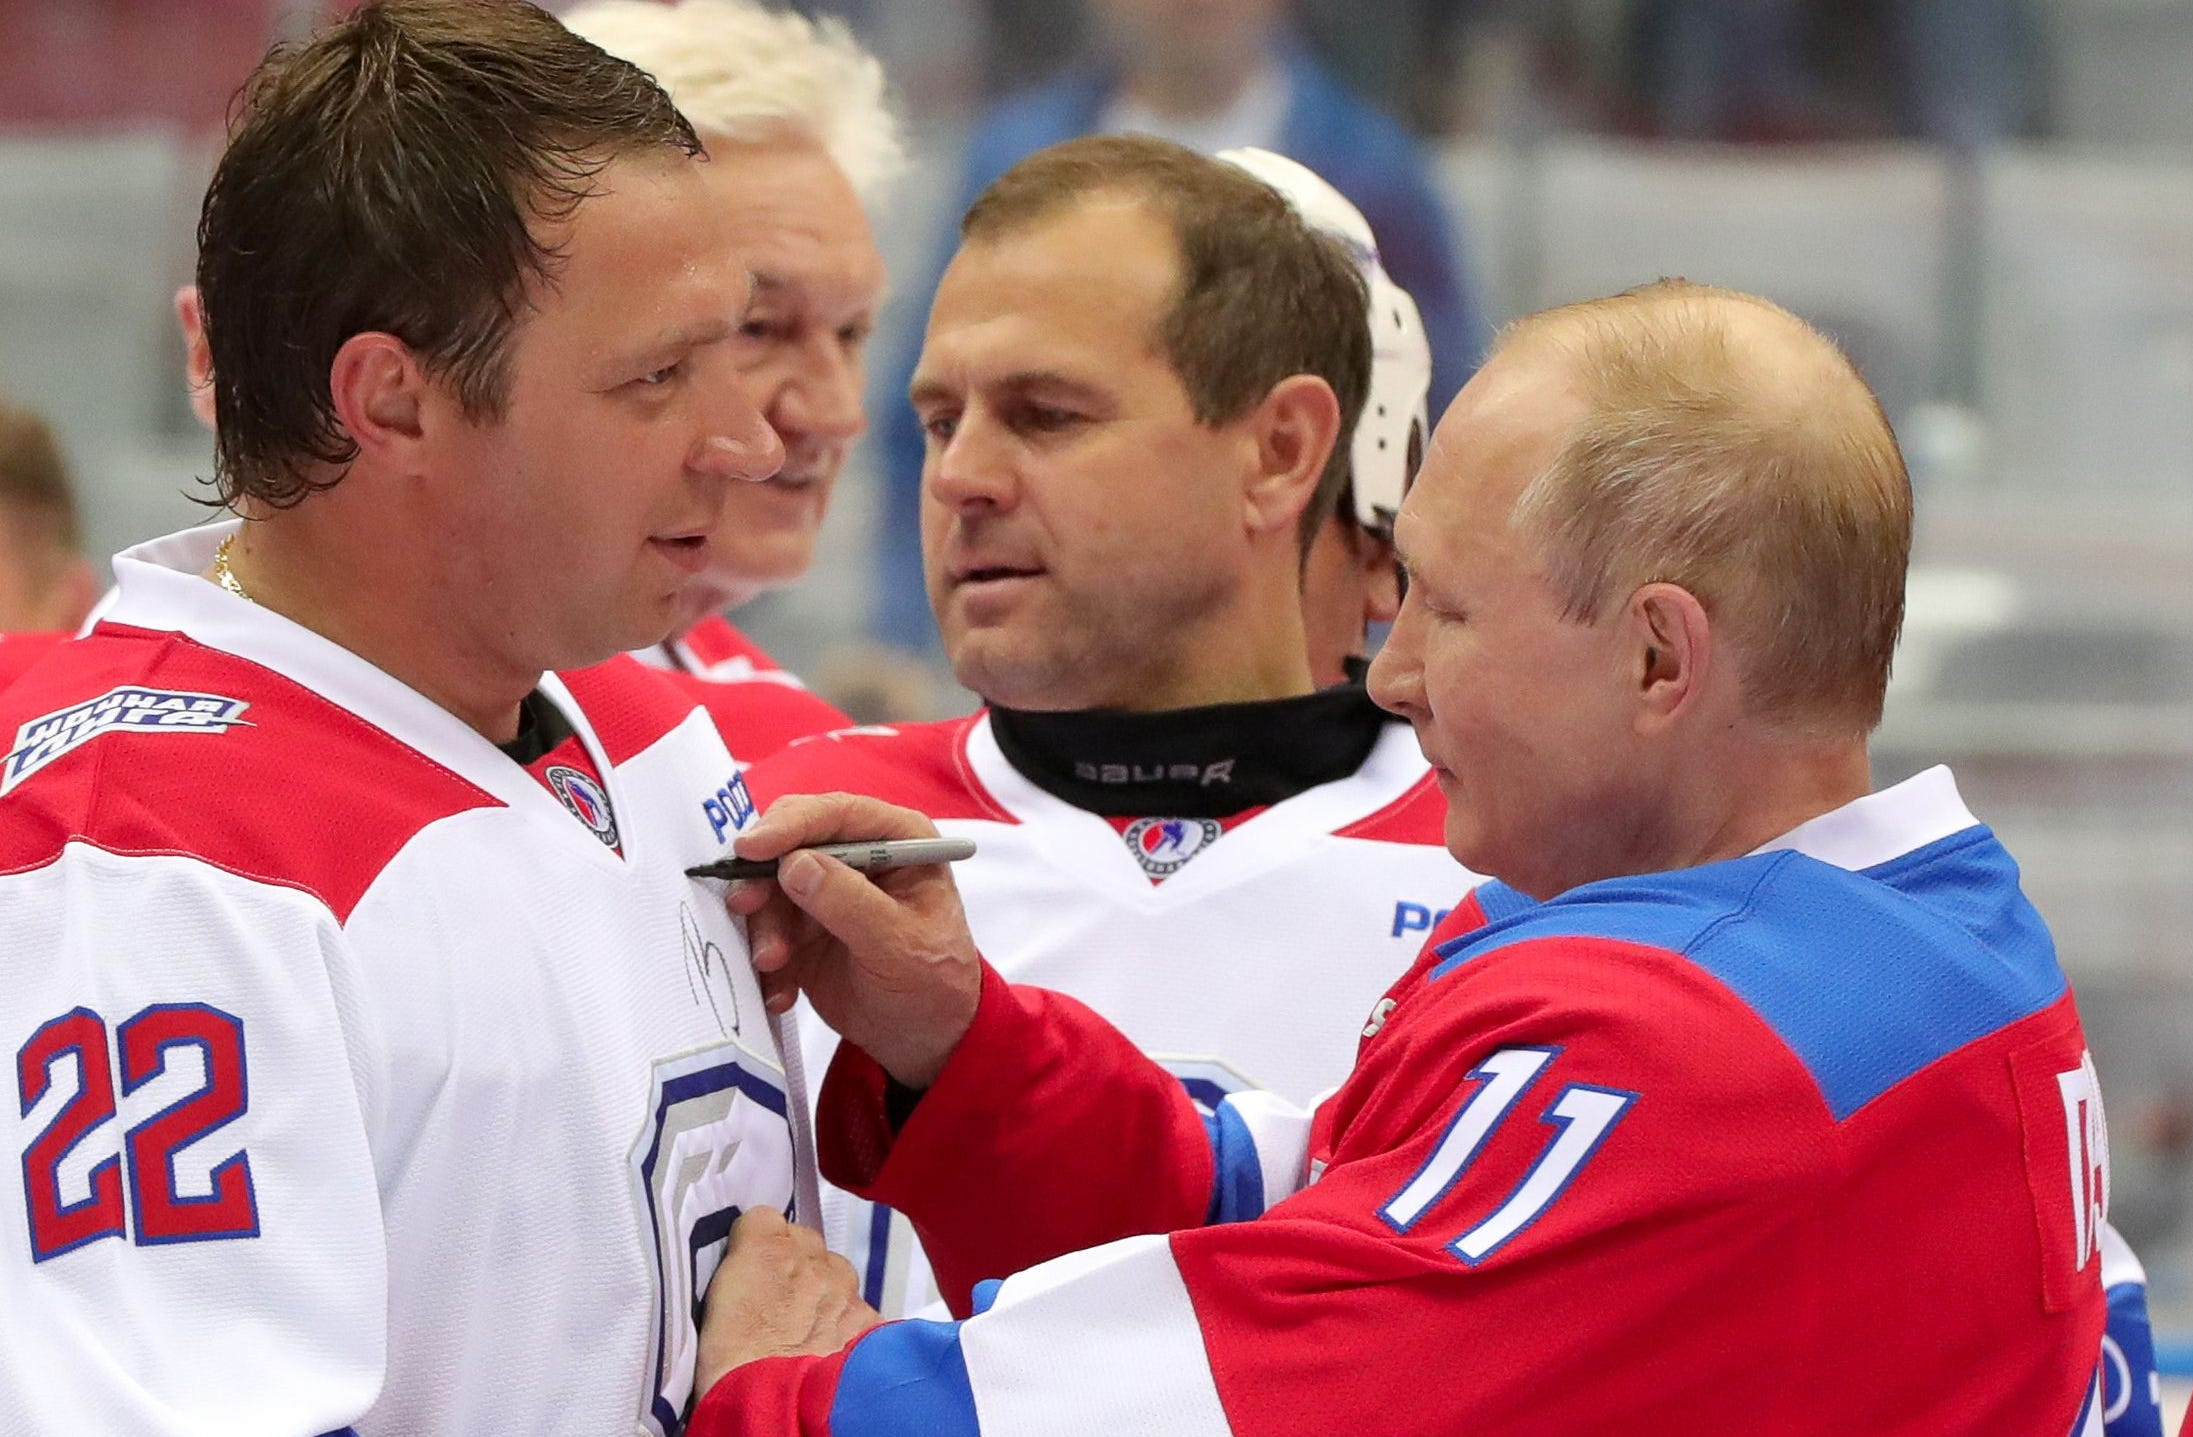 Russian President Vladimir Putin signs an autograph after the Night Ice Hockey League gala at the Bolshoy Ice Dome in Sochi, Russia.